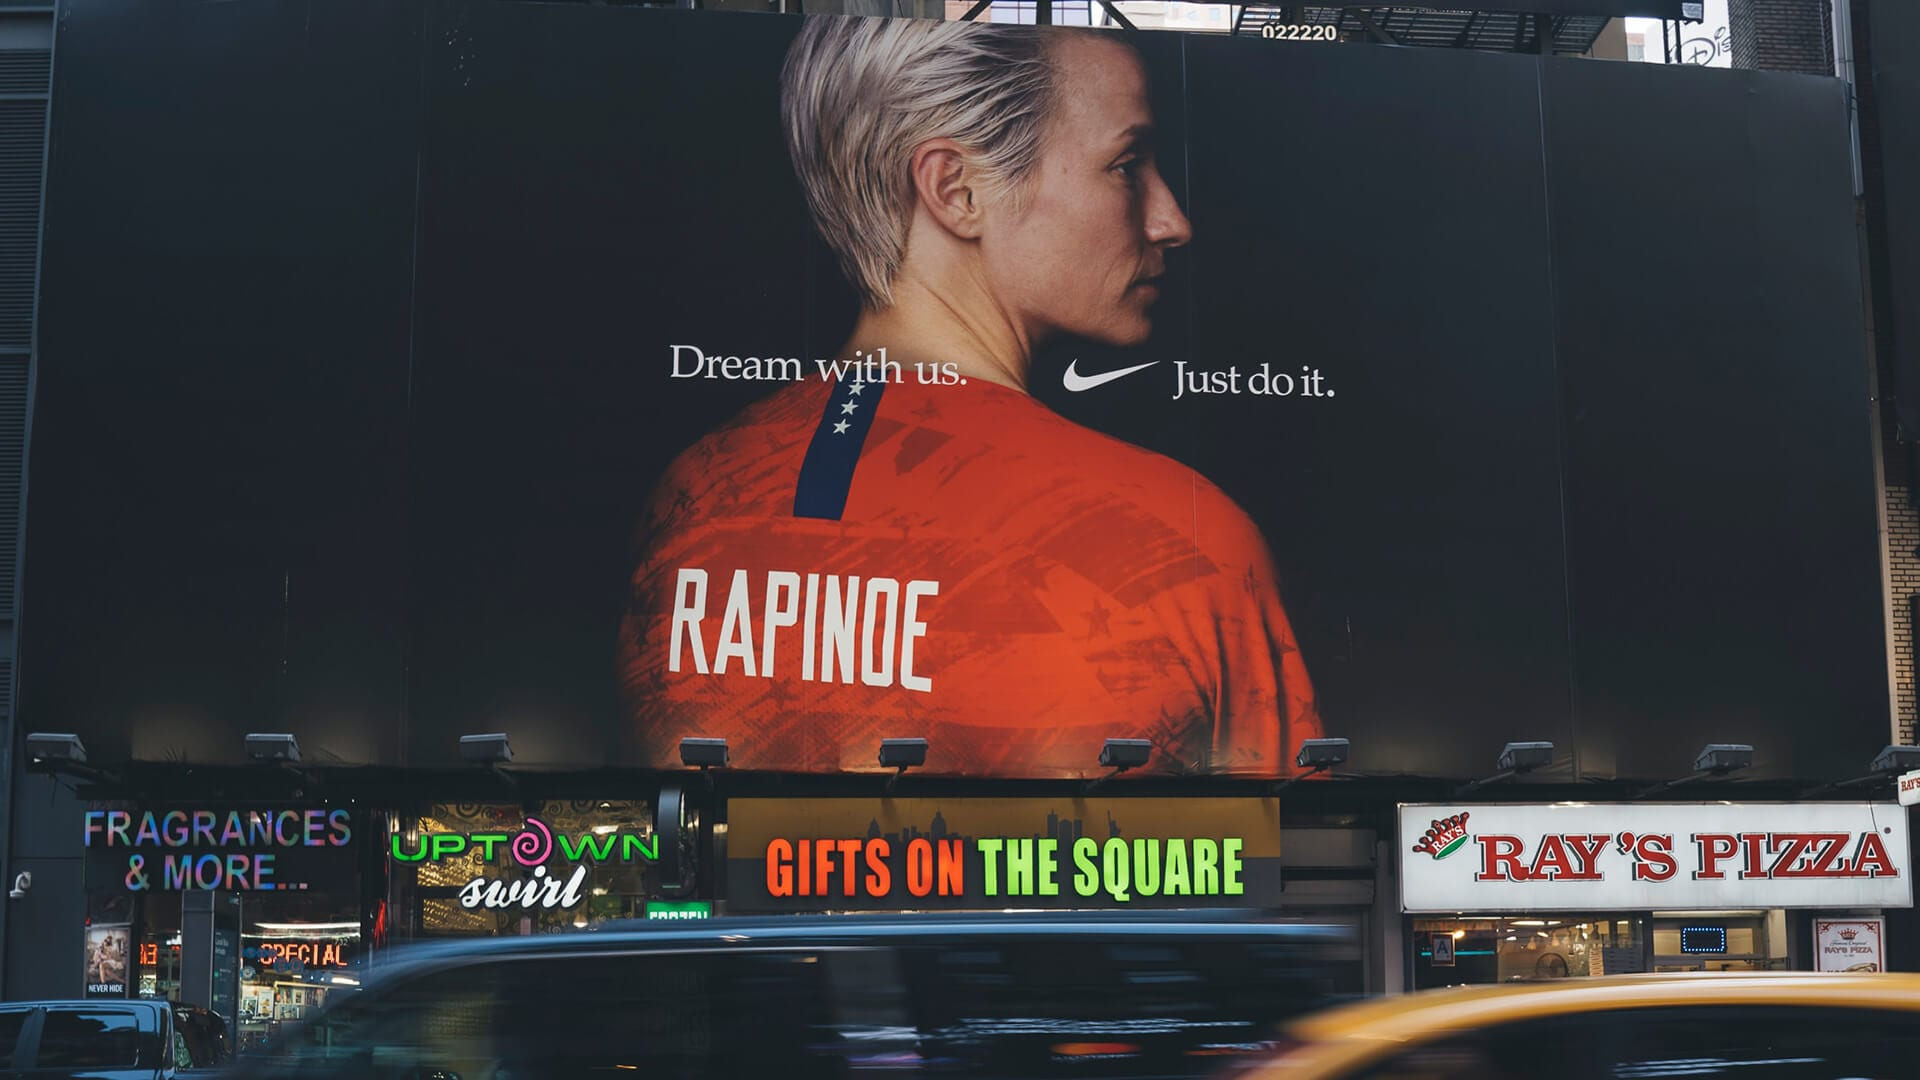 5 ways to ensure your billboard works emotional nike ad in times square